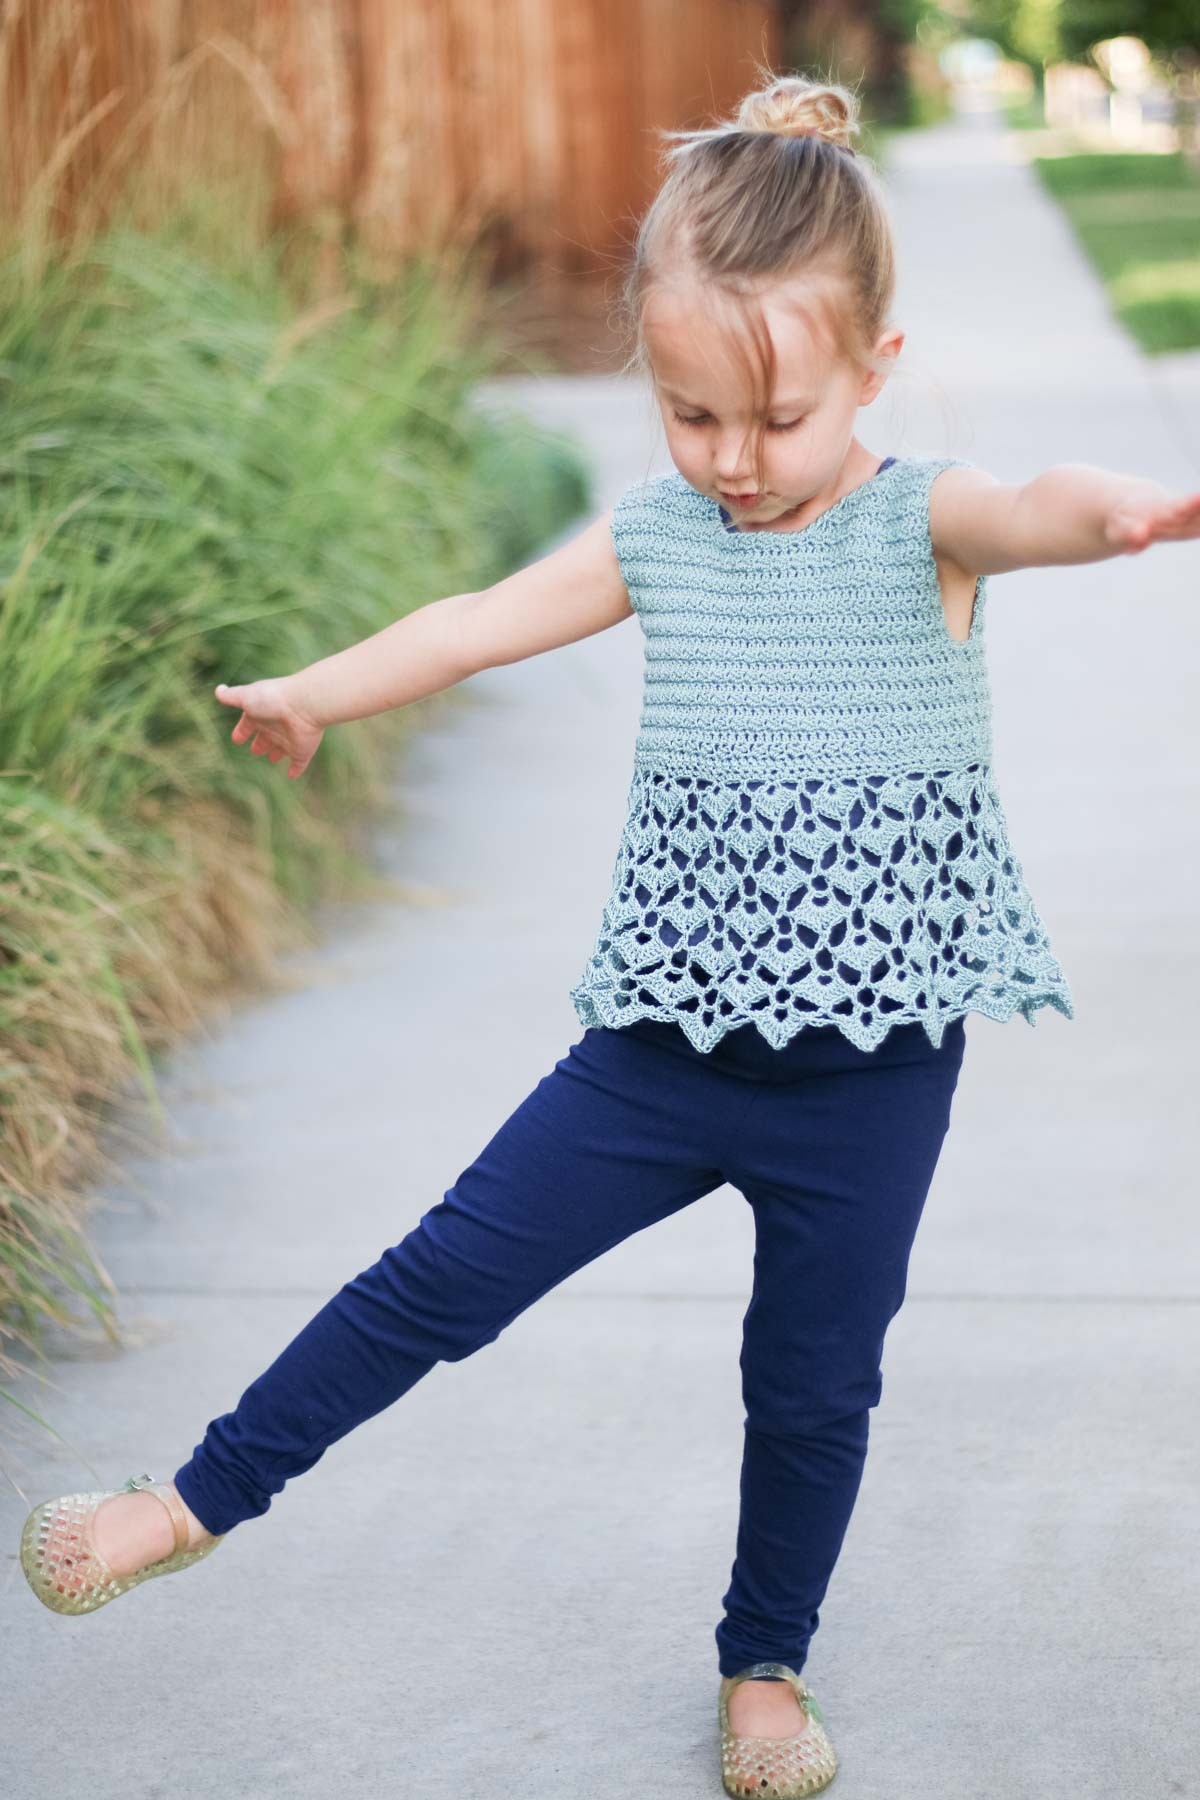 This kids crochet tank top pattern is easy to make into a dress too. Follow the free pattern and video tutorial to learn how!